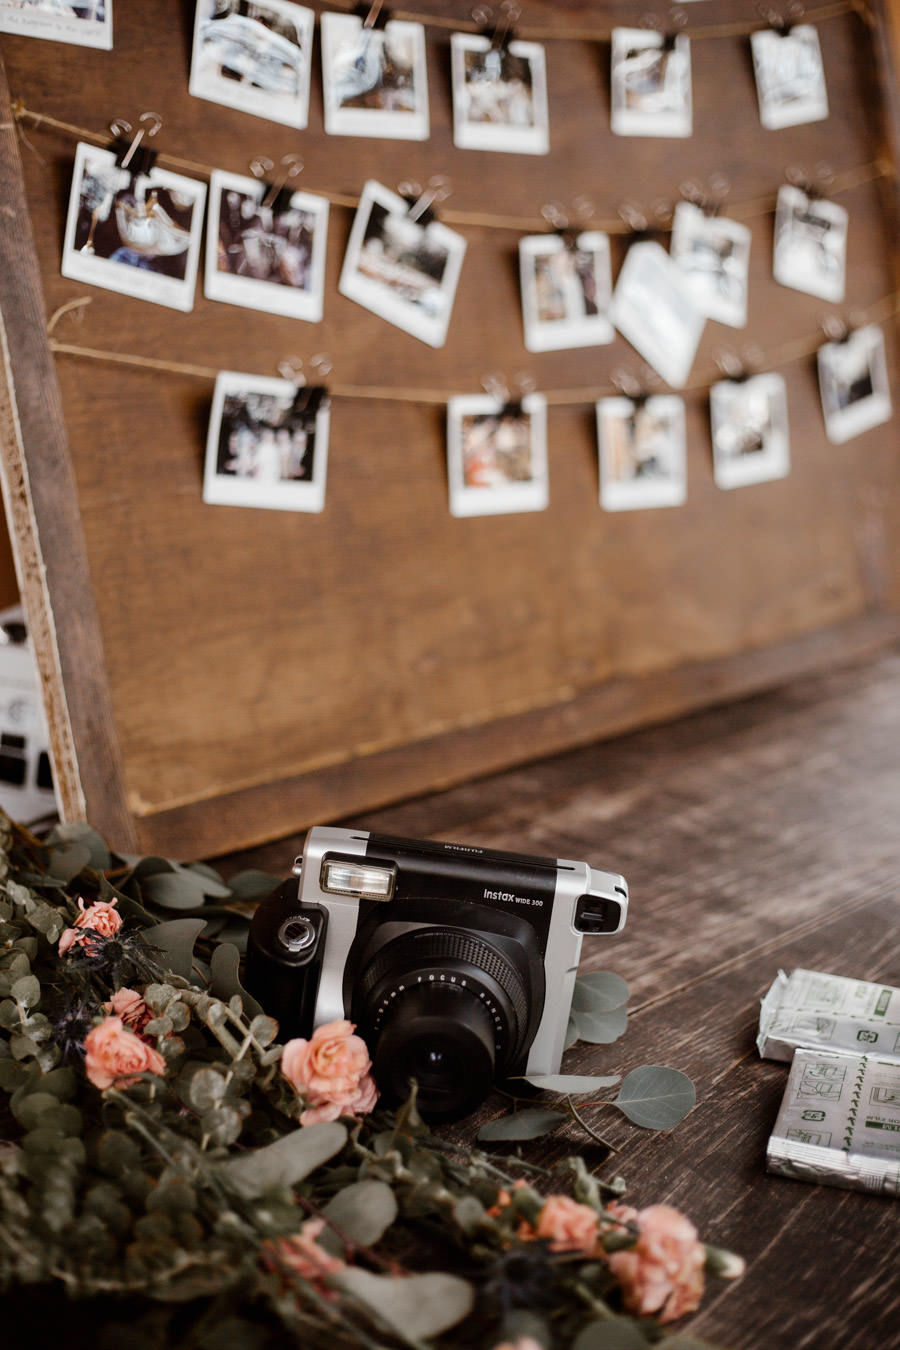 polaroid camera in front and a board full of photos on the background